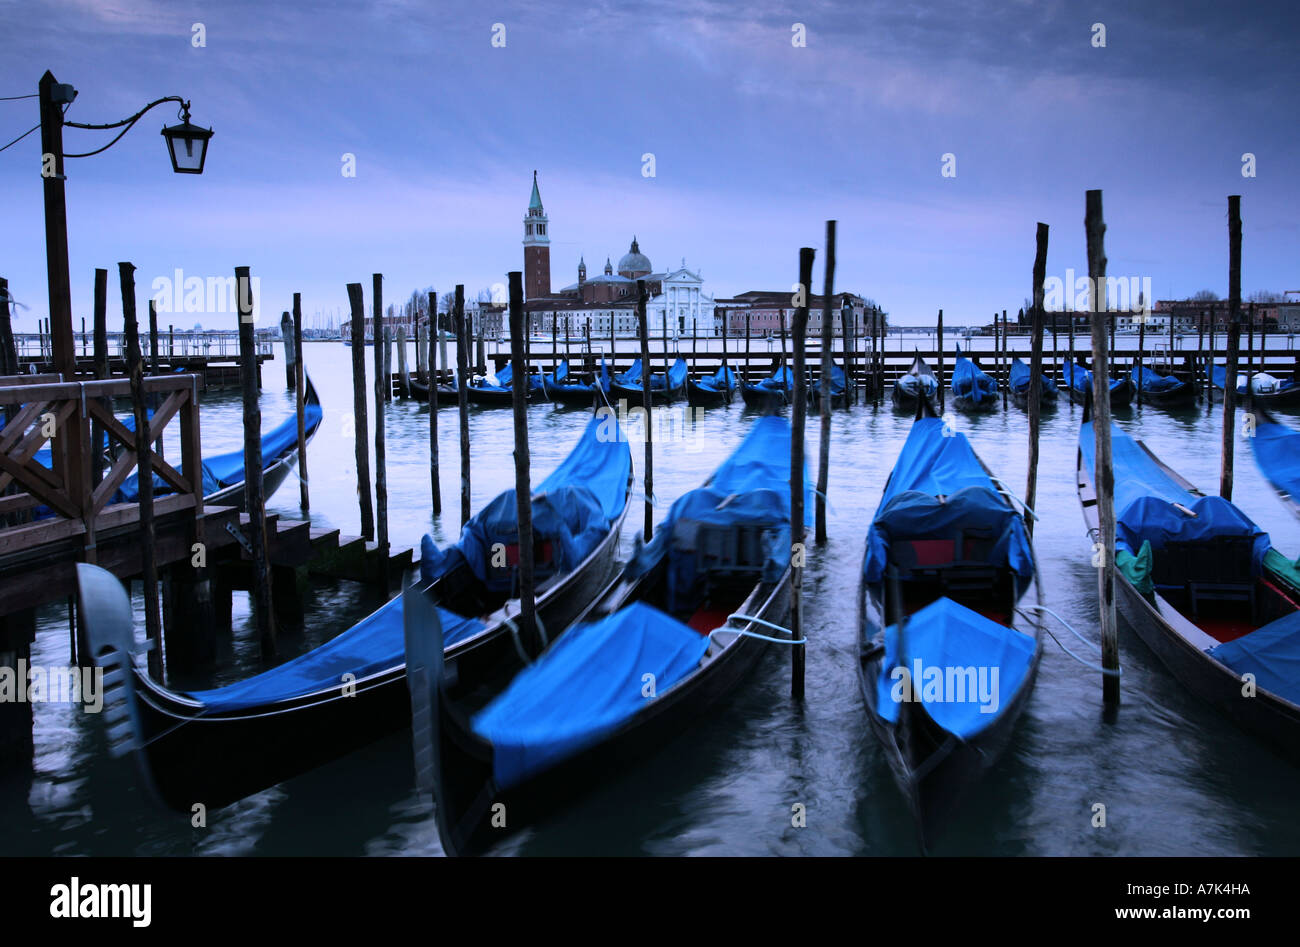 Typical venice postcard greeting card calendar view of grand canal typical venice postcard greeting card calendar view of grand canal and san giorgio maggiore cathedral italy europe eu kristyandbryce Images